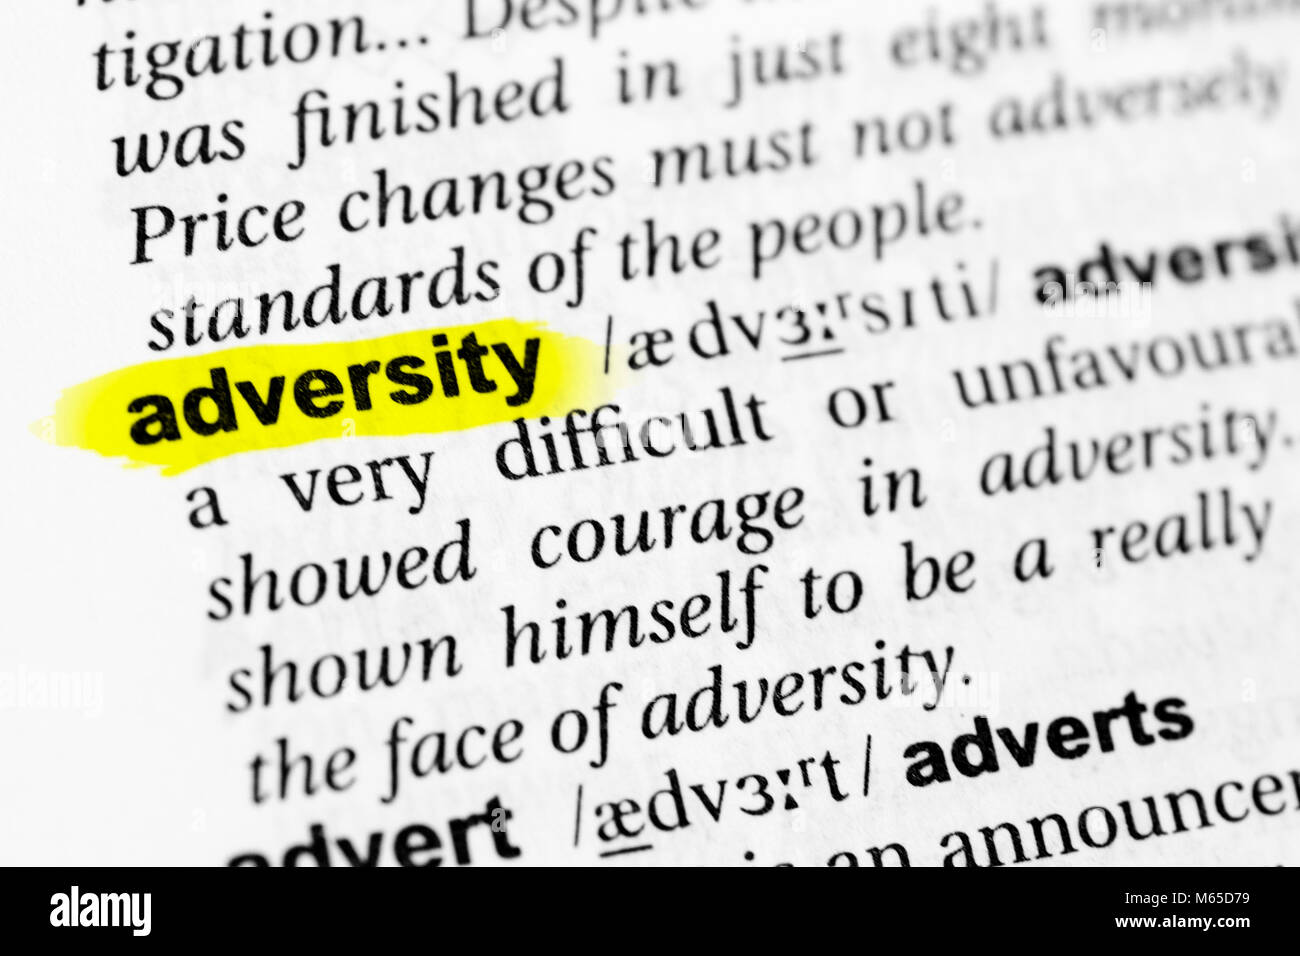 Highlighted English word 'adversity' and its definition in the dictionary. - Stock Image